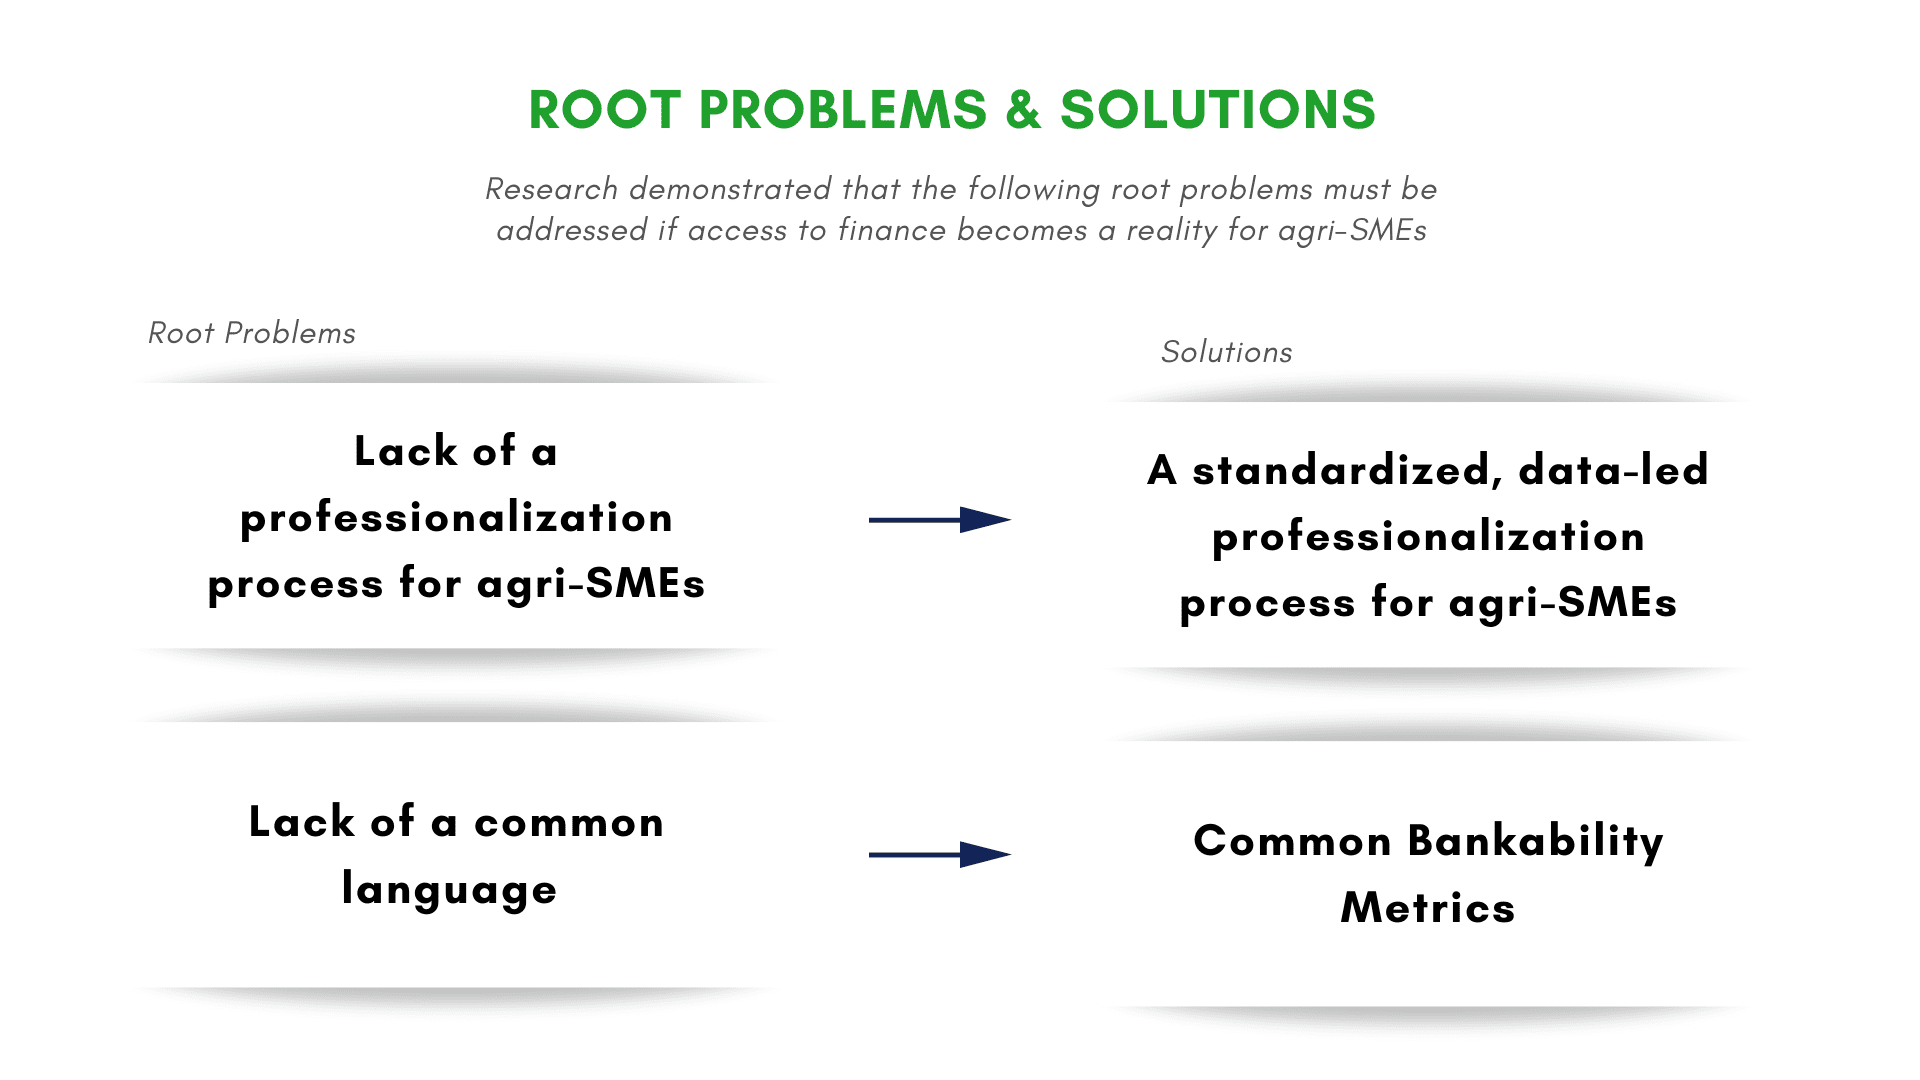 A graphic showing the root problems and solutions that research has determined must be addressed if access to finance is to be a reality for agri-SMEs. The first problem is the lack of a professionalization process for agri-SMEs. The solution is a standardized, data-led professionalization process for agri-SMEs. The second problem is a lack of a common language. The solution is Common Bankability Metrics.